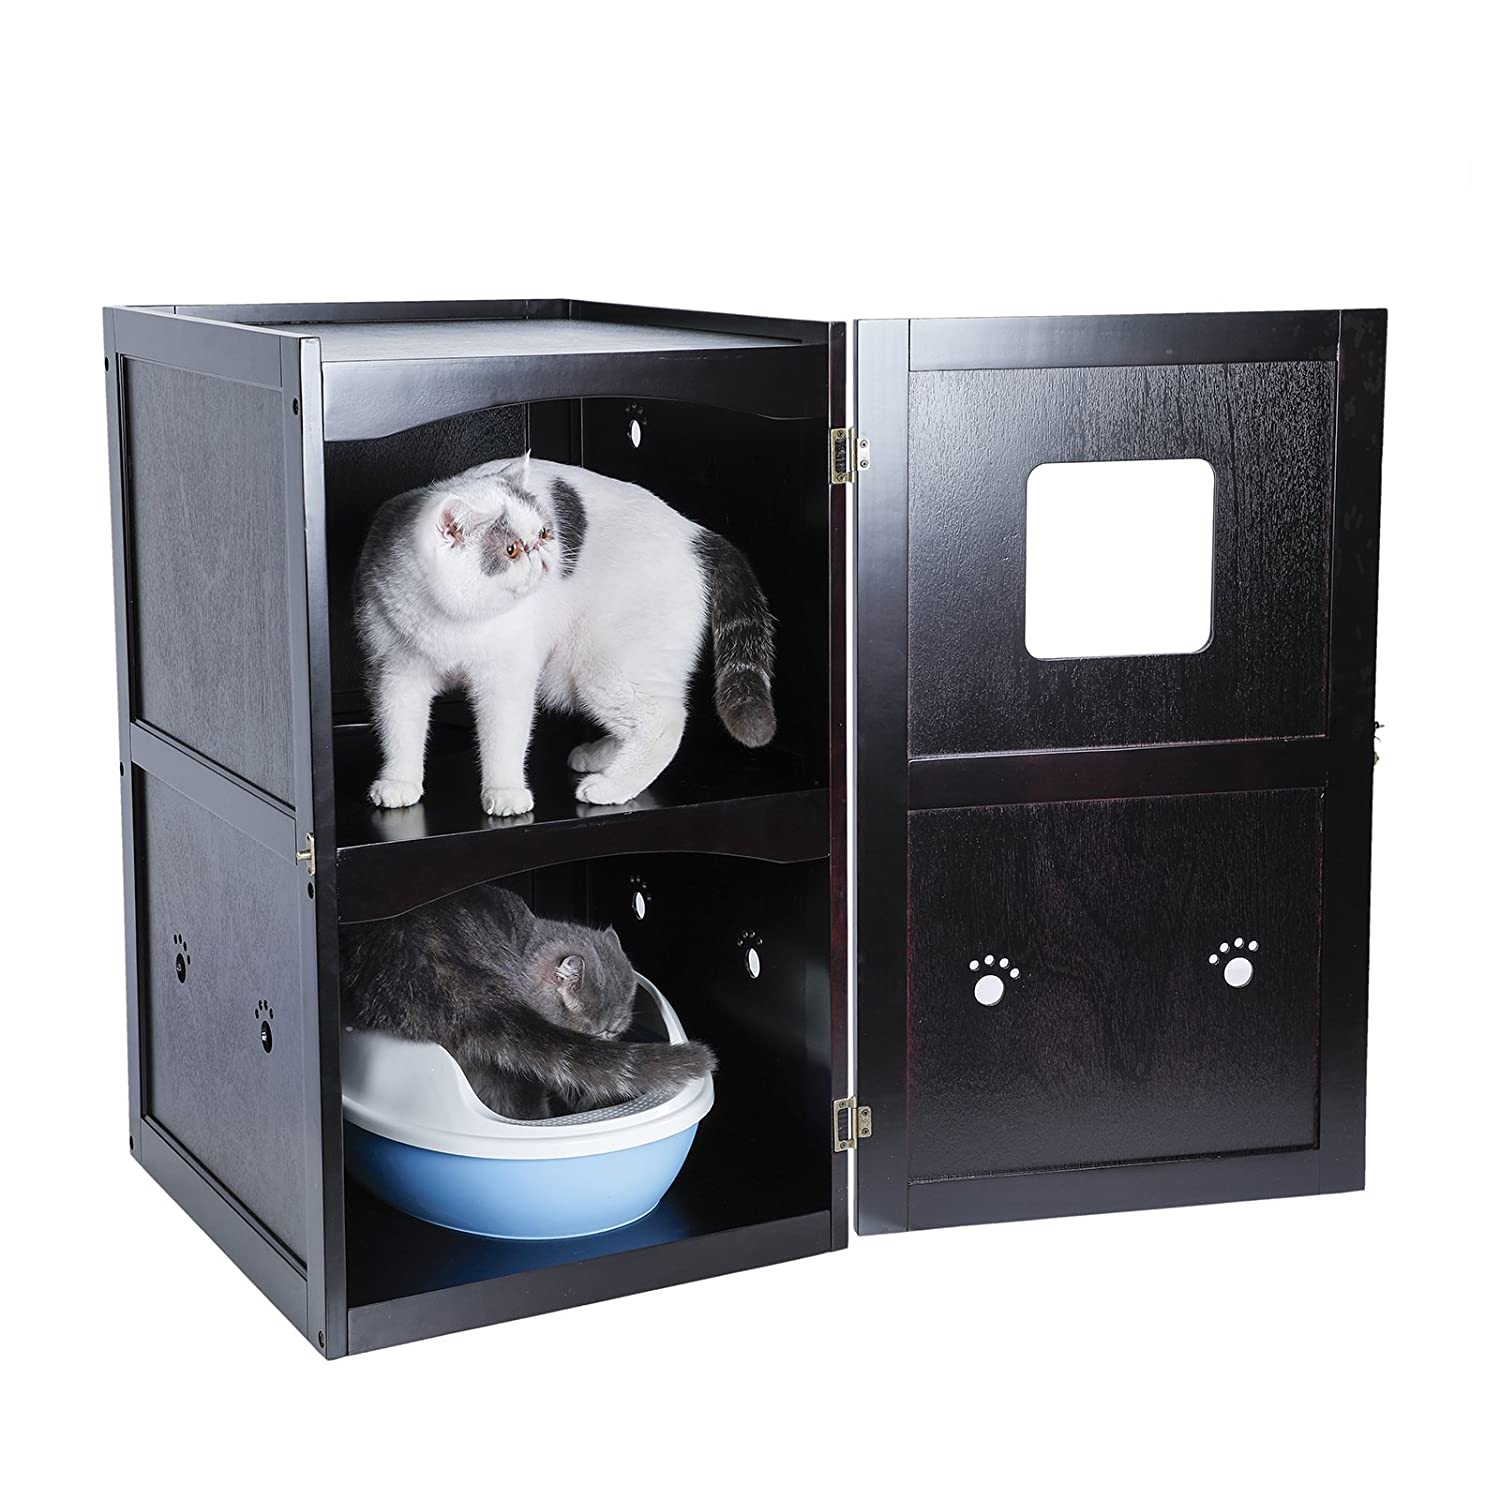 Petsfit Espresso Double-Decker Pet House Litter Box Enclosure Night Stand Painted With Non-Toxic Ltd